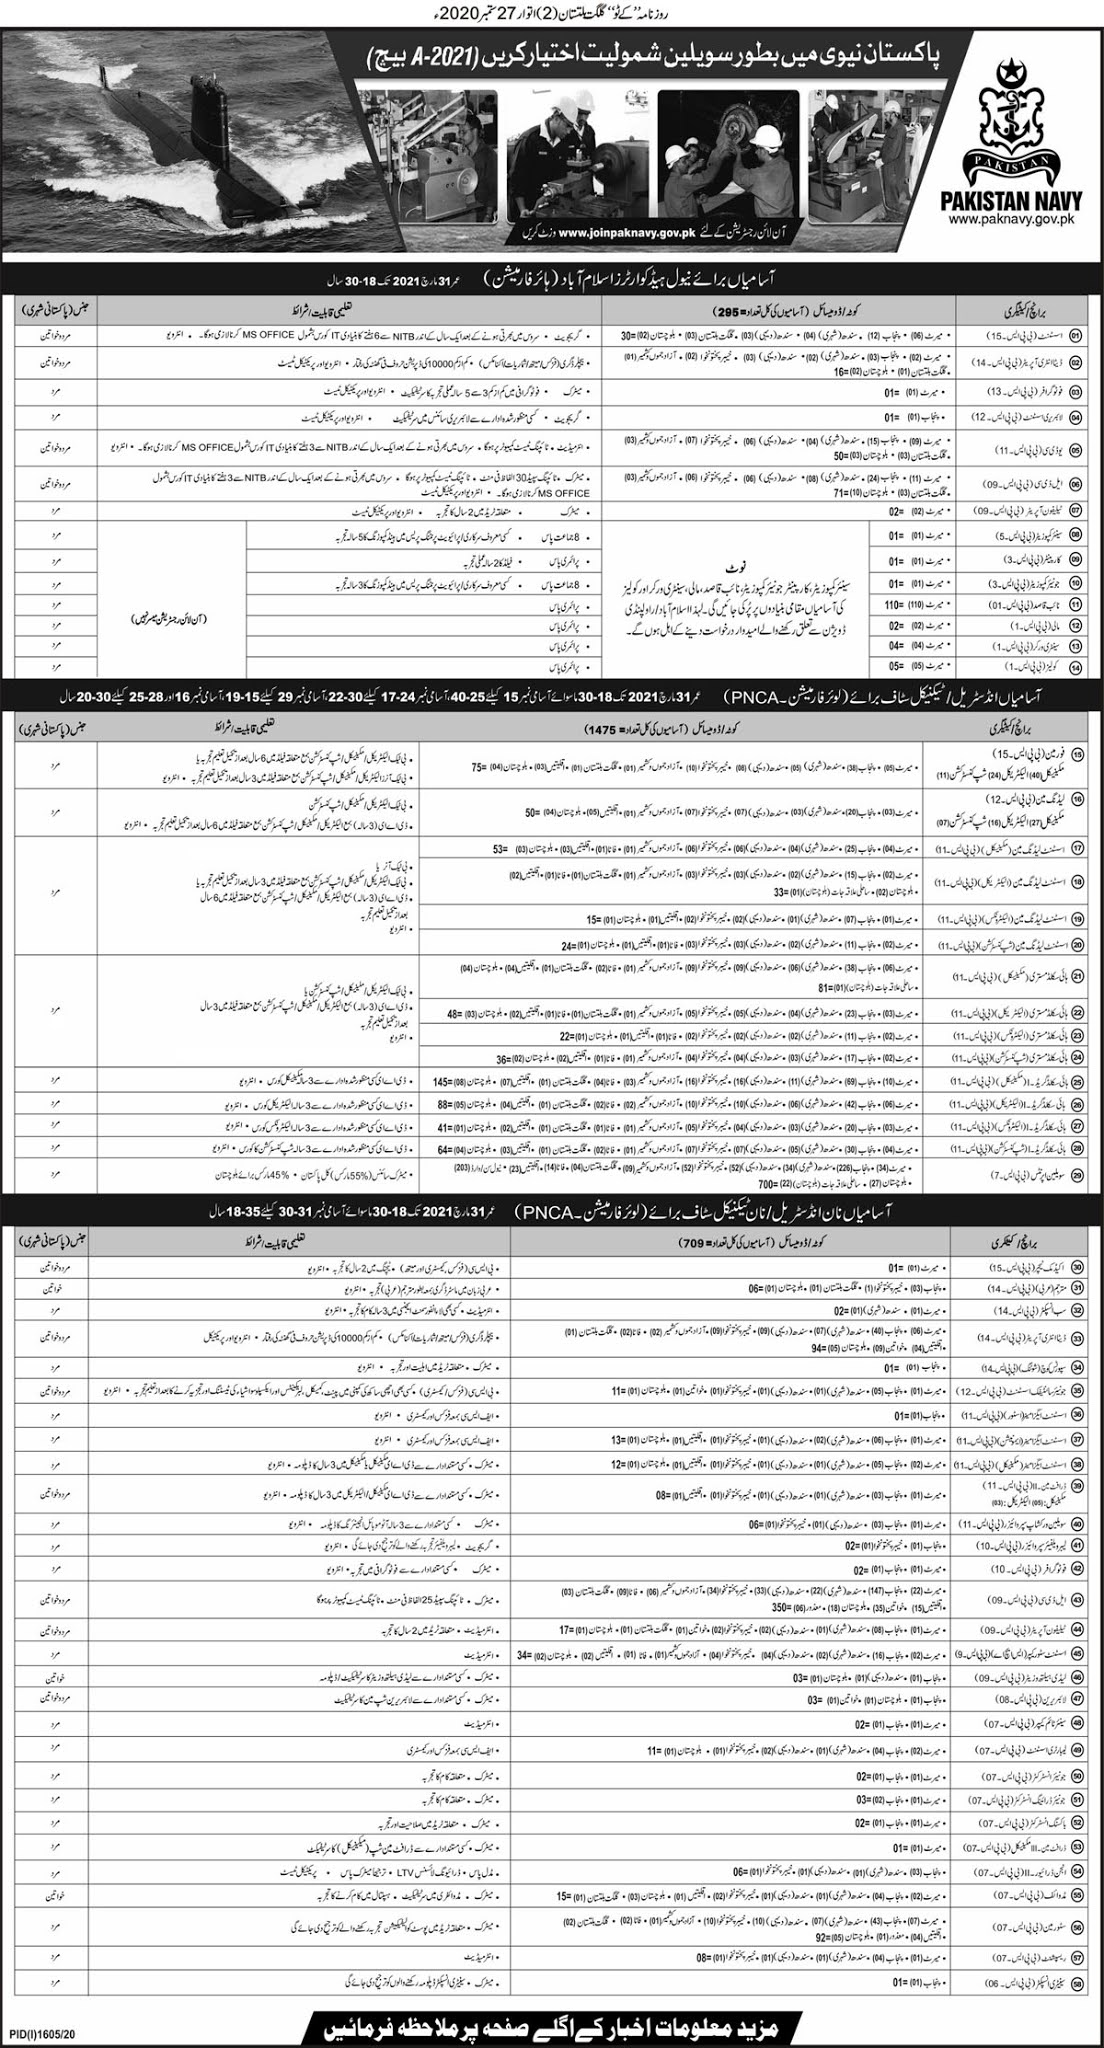 Pakistan Navy 2479 Jobs As a Assistant, Data Entry Operator, UDC, LDC and many more vacant posts 2020